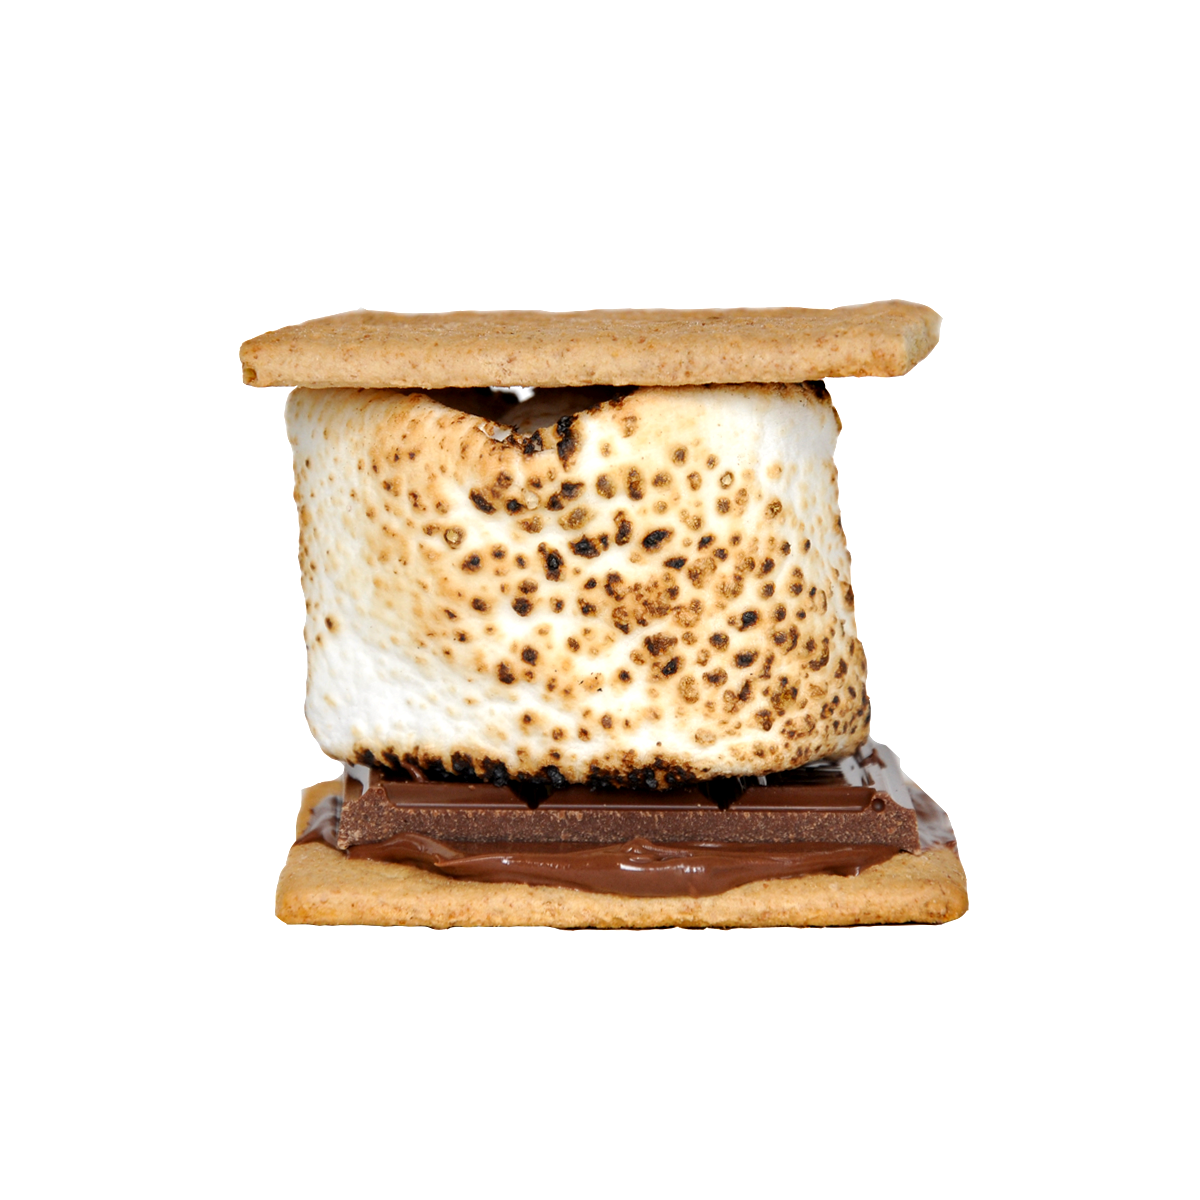 s'mear.png